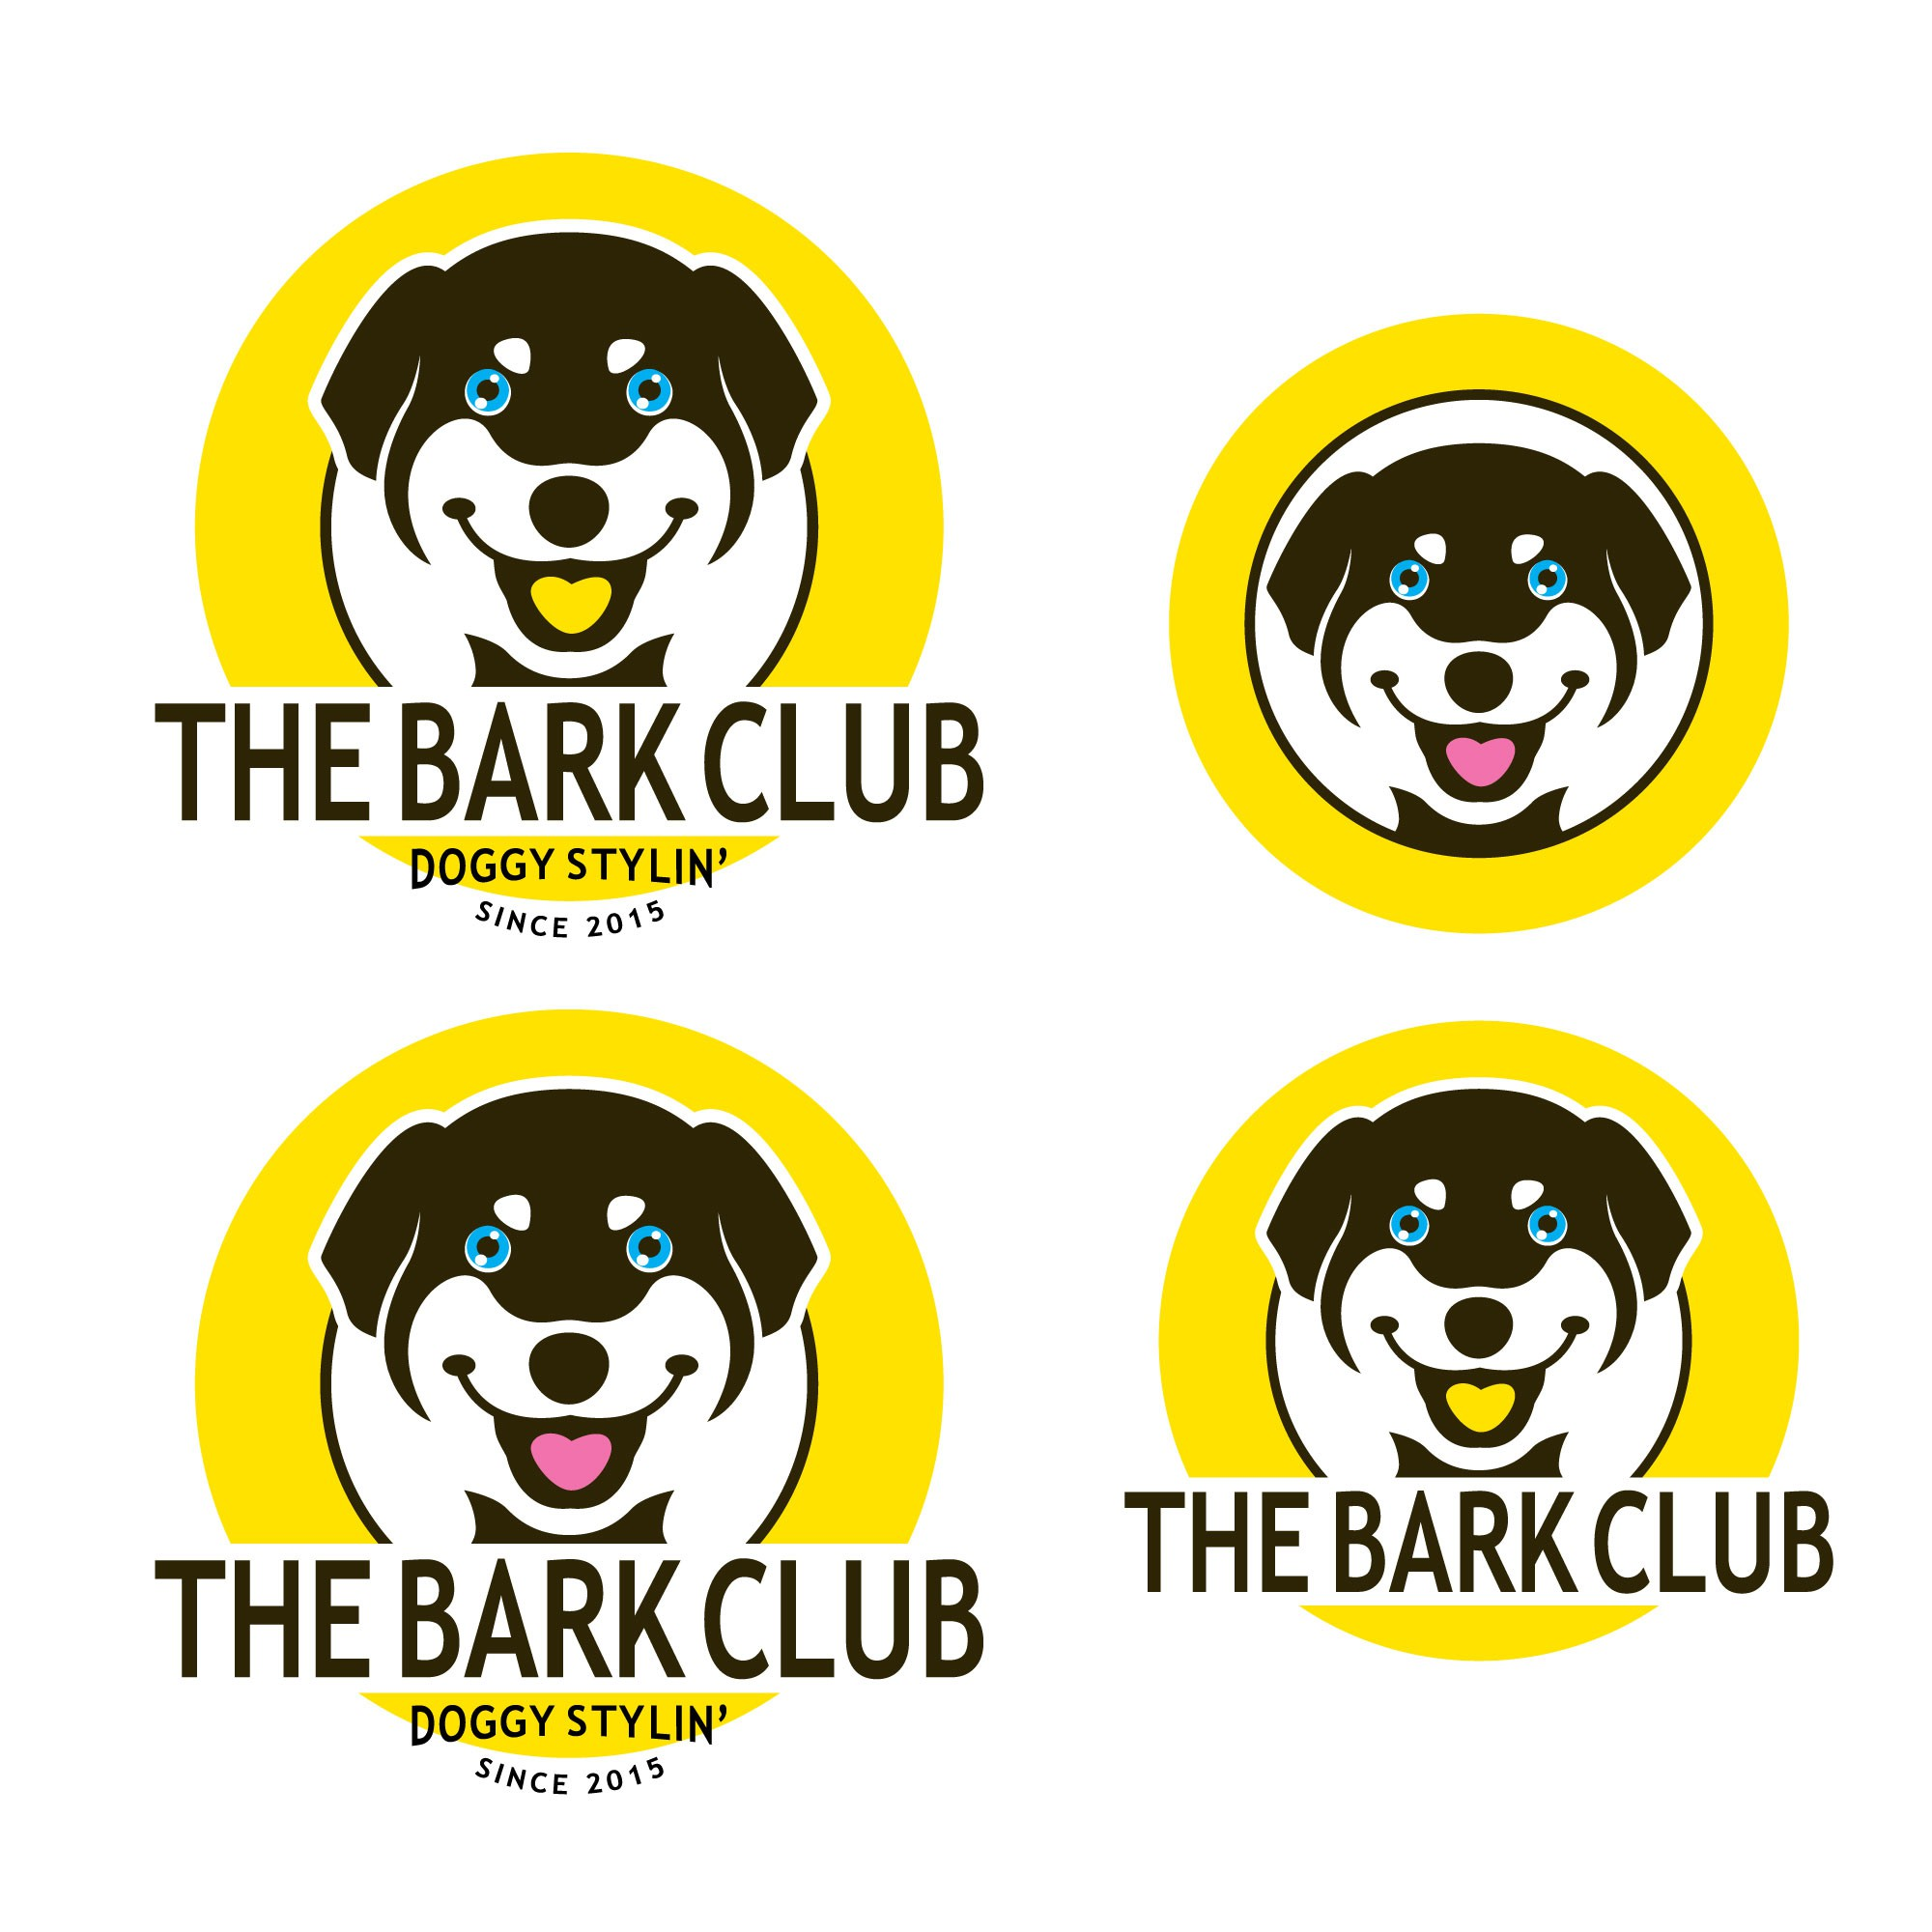 DOG LOVERS! Dog business needs a new logo!